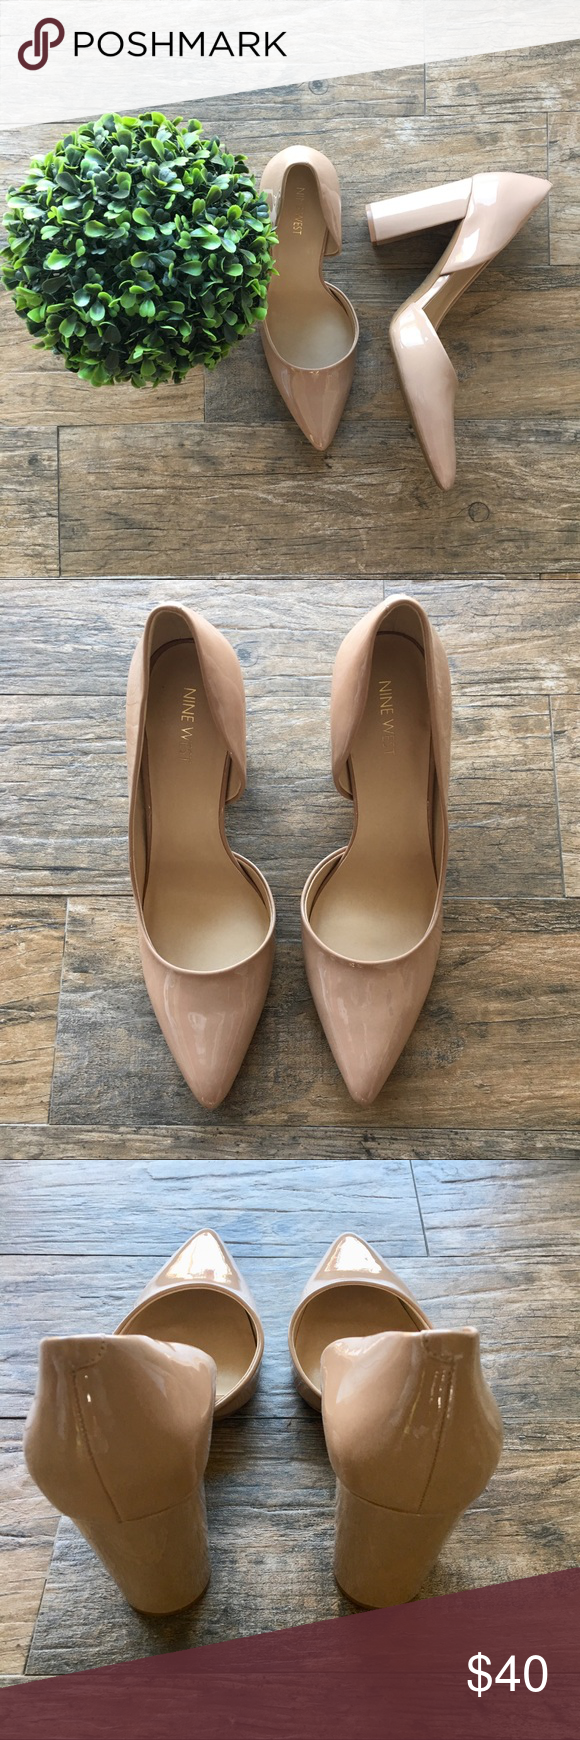 "df2ccd60a8 NEW Nine West Anisa d Orsay Block Heel Pump New Without Tags Size 11""  Pointed Toe, Patent faux Leather Block heel:3.75"" Nine West Shoes Heels"